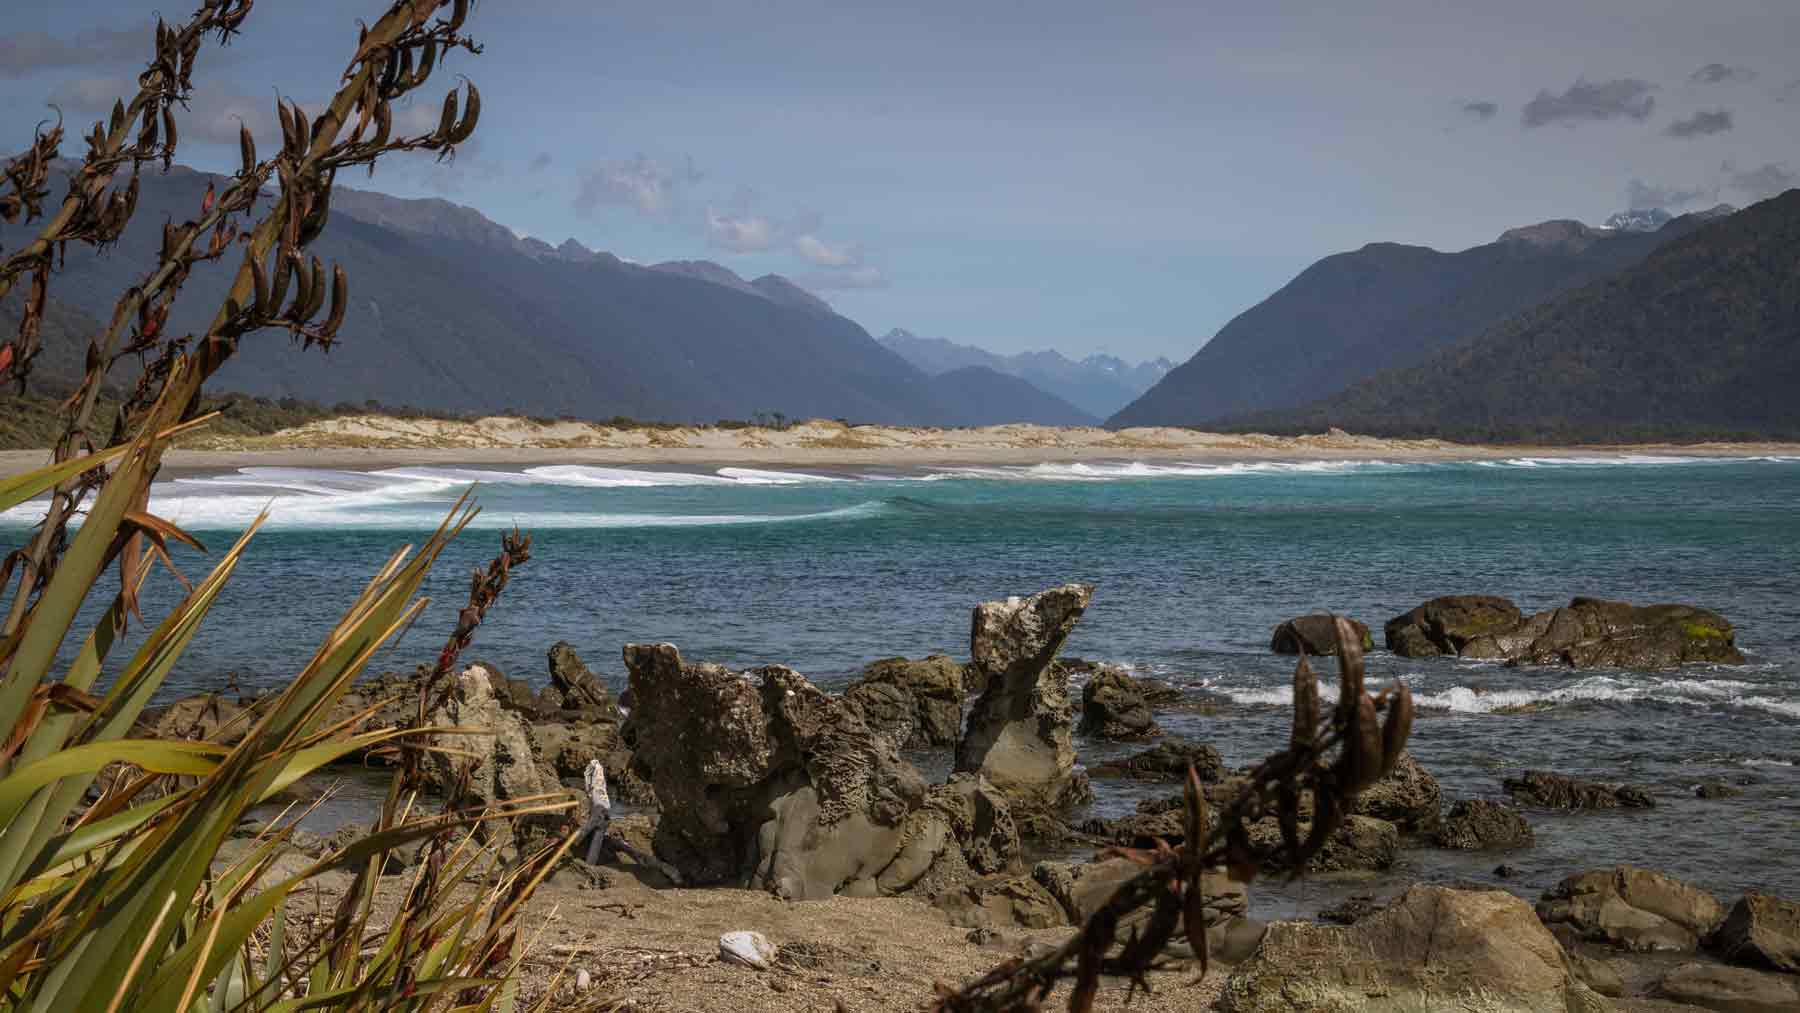 View from Martins Bay, with flax, sea and sand hills in the foreground,  up the Hollyford Valley, Fiordland, New Zealand taken by Asmuss founder Fiona. Walking the Hollyford Track was a great test of the Asmuss luxury stylish sustainable travel clothing